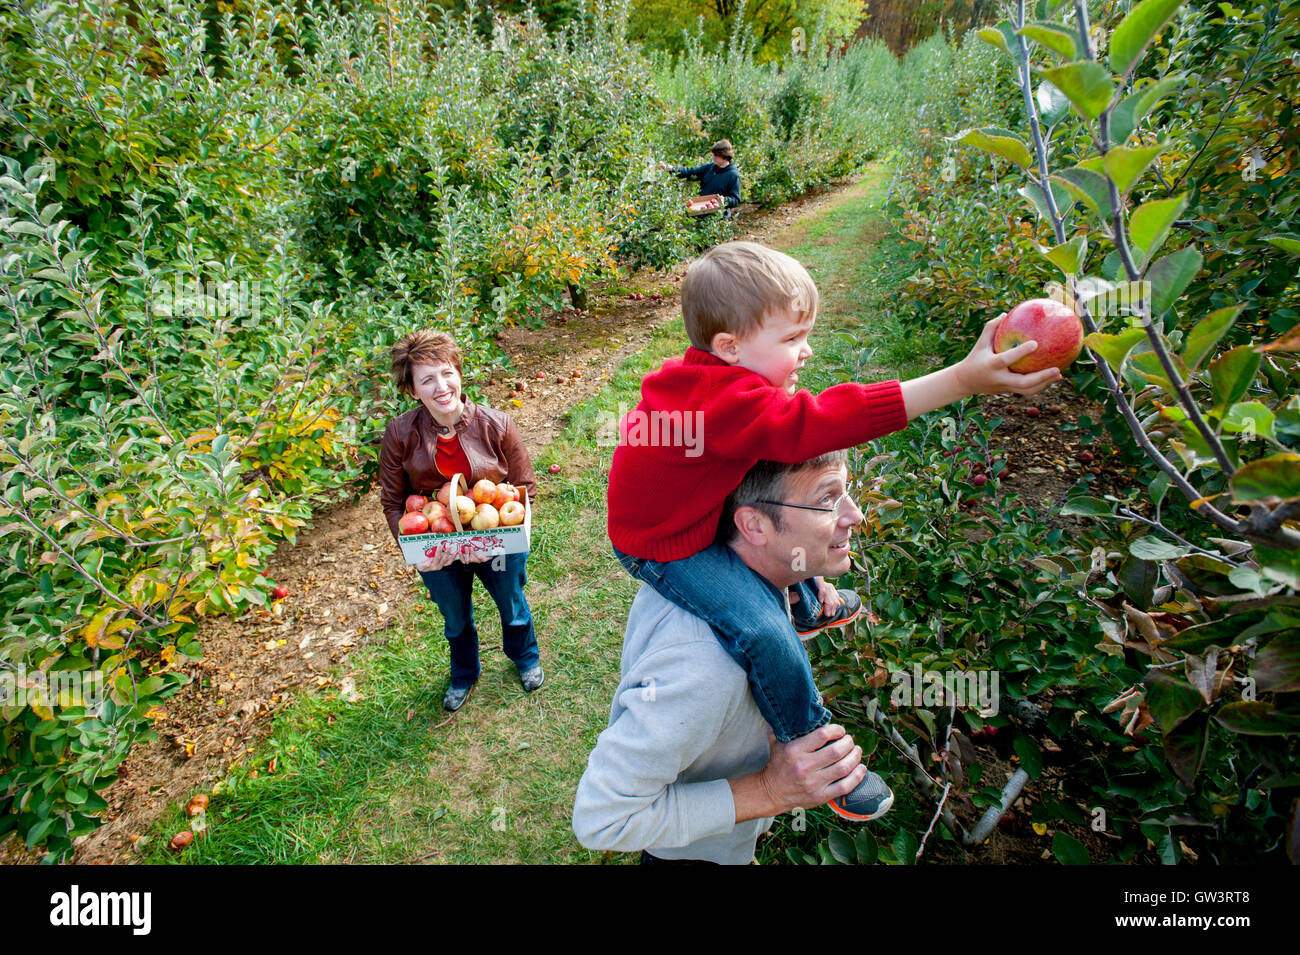 usa-maryland-family-apple-picking-at-a-p